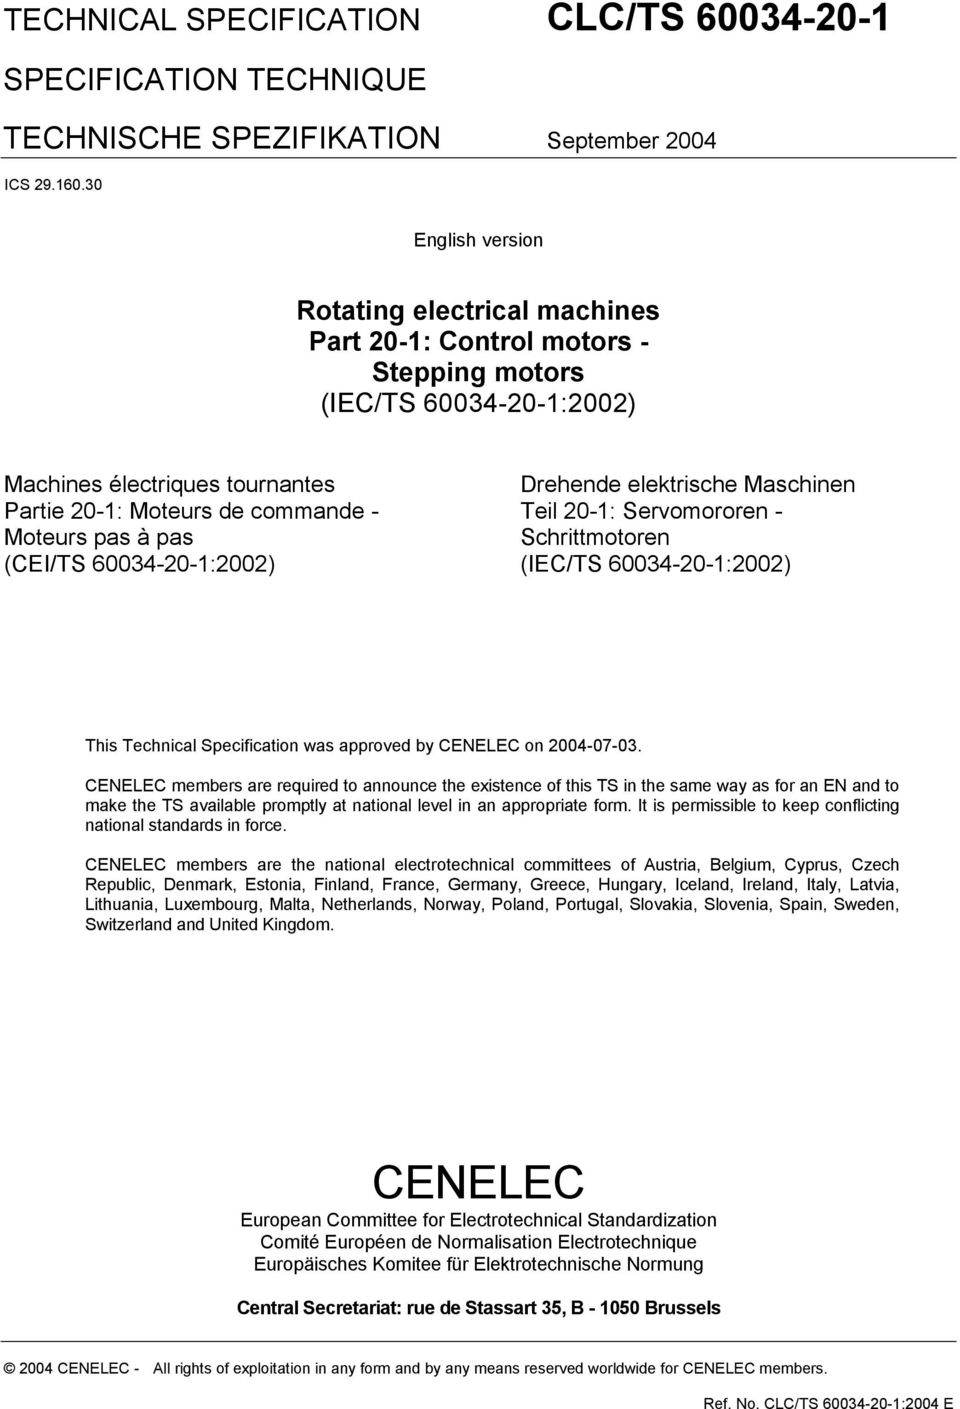 pas (CEI/TS 60034-20-1:2002) Drehende elektrische Maschinen Teil 20-1: Servomororen - Schrittmotoren (IEC/TS 60034-20-1:2002) This Technical Specification was approved by CENELEC on 2004-07-03.